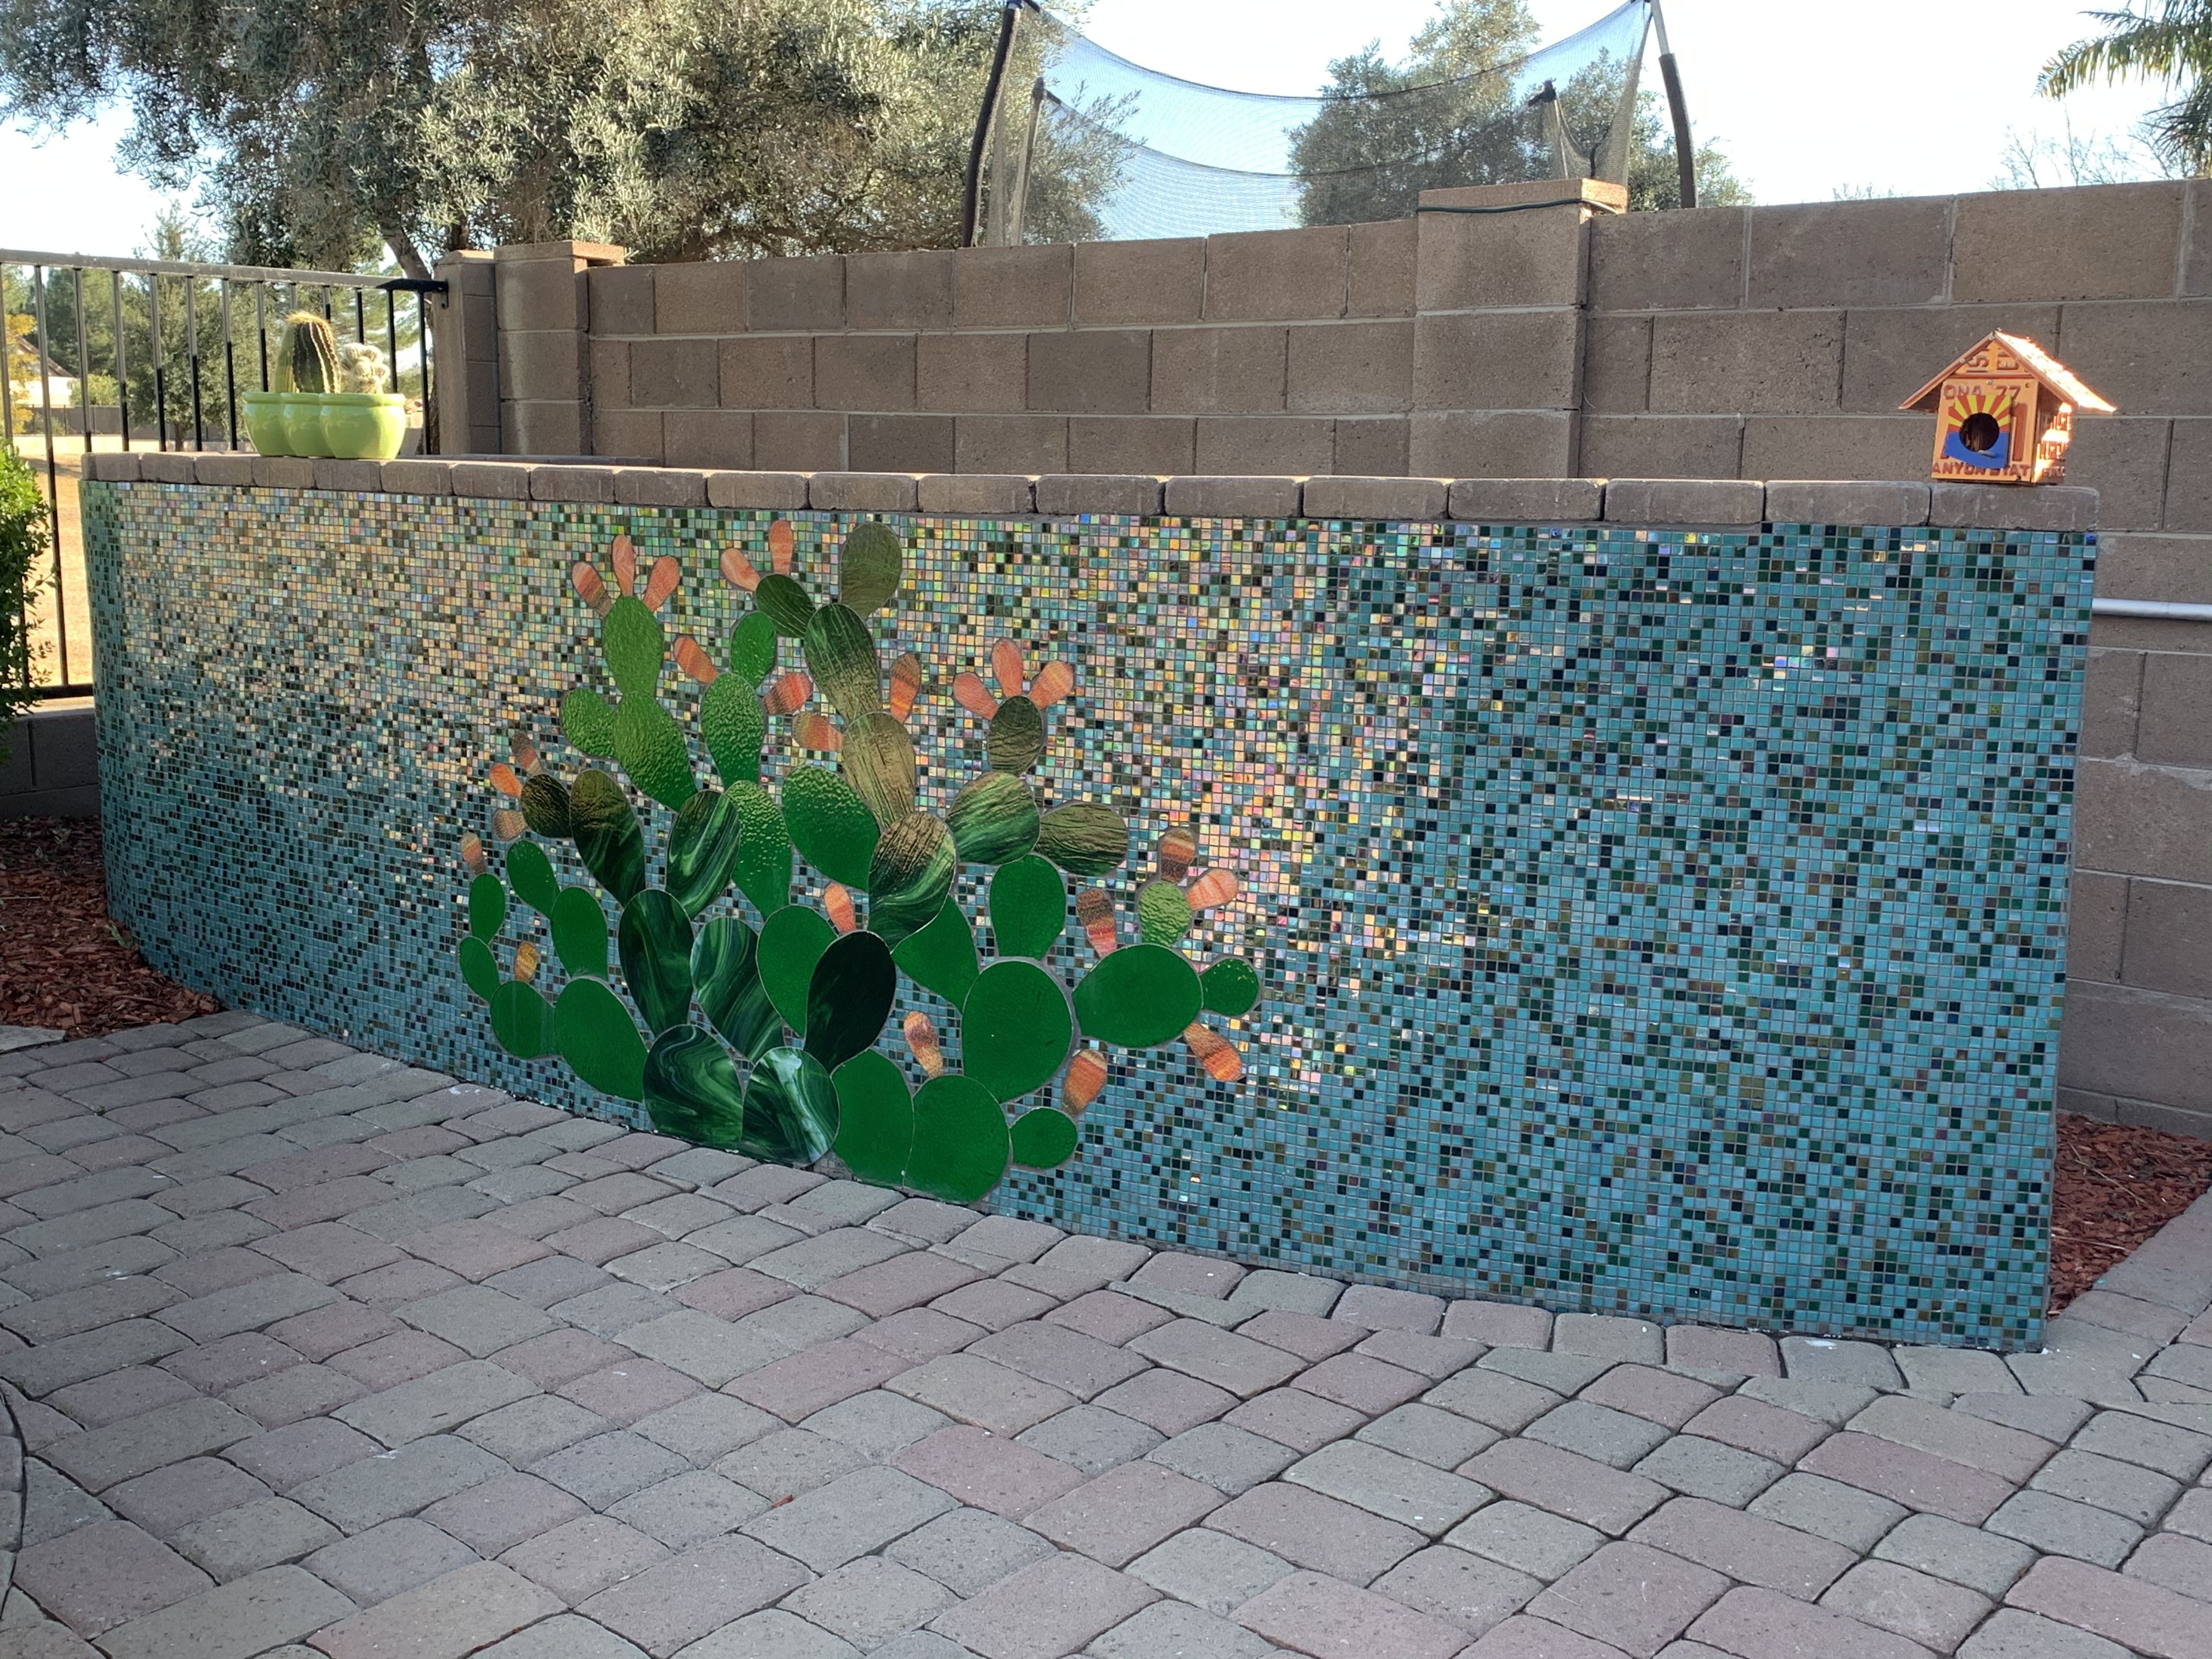 Stained Glass Tiled Wall In 2020 Mosaic Wall Mosaic Wall Art Stained Glass